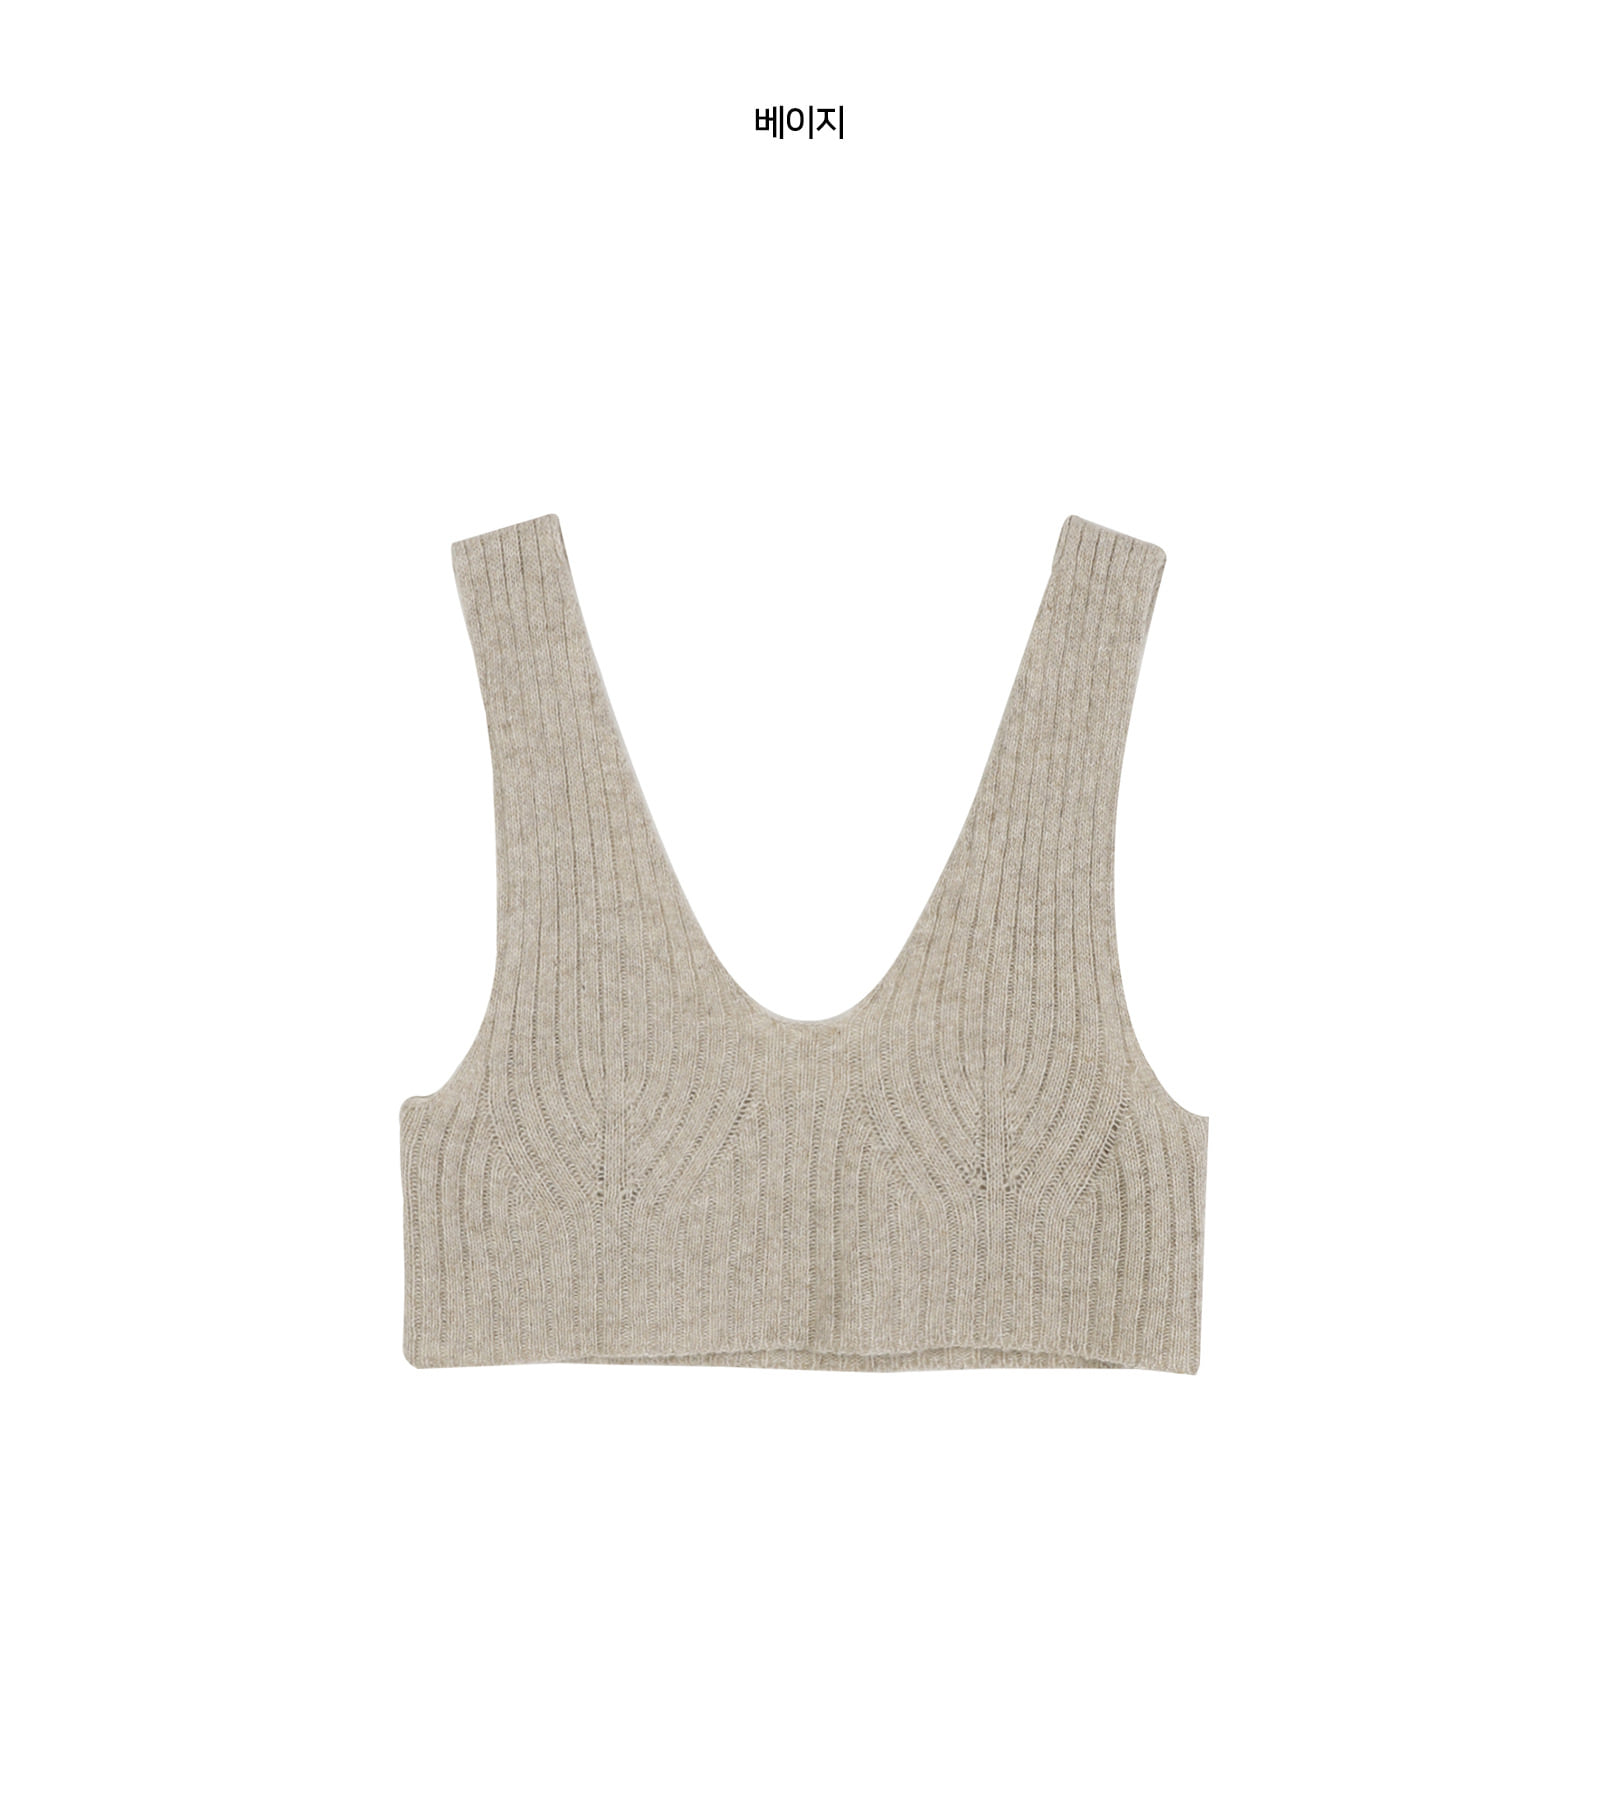 Barbie cropped sleeveless knit top